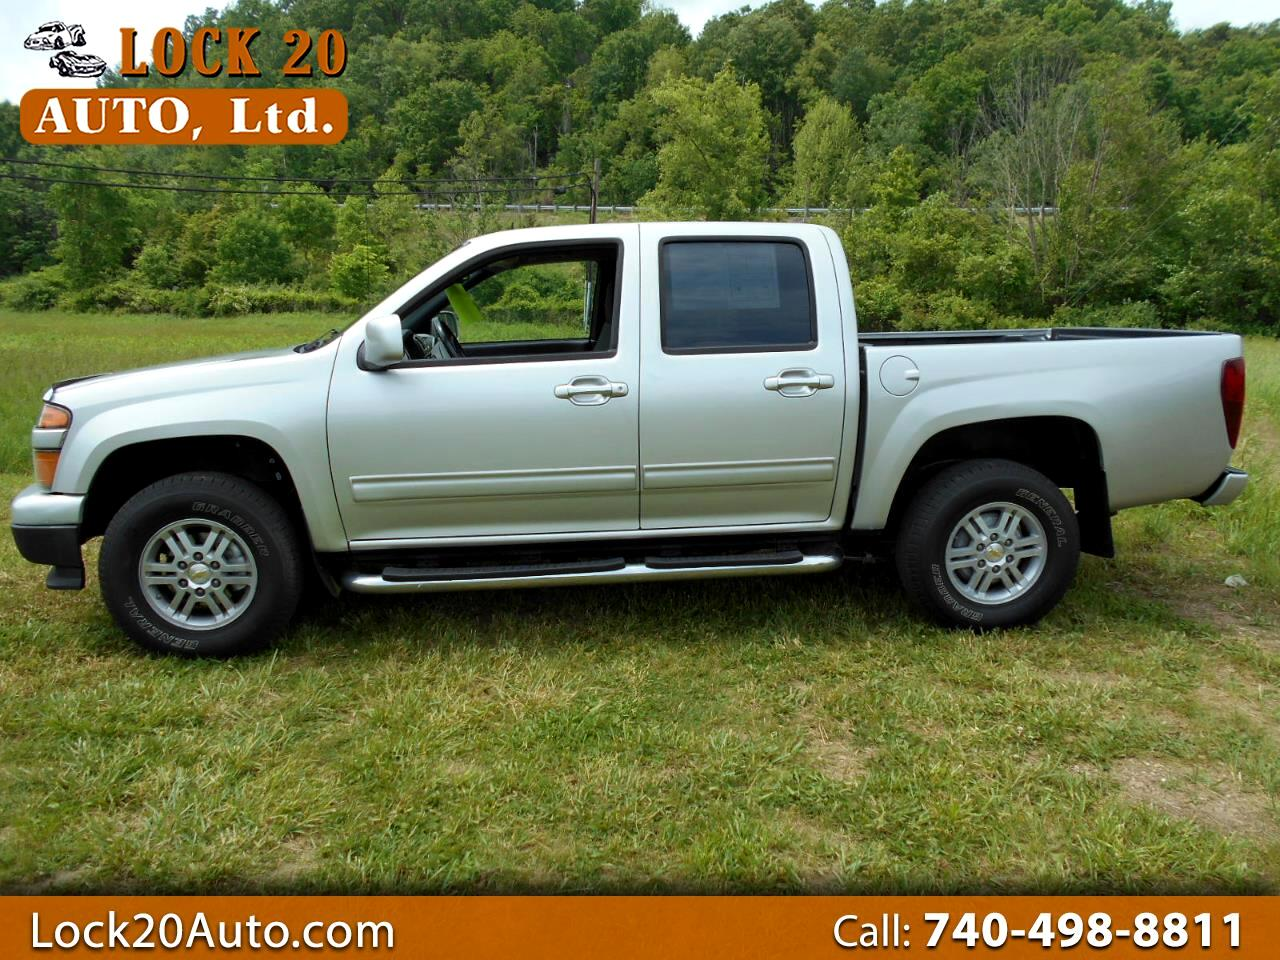 2010 Chevrolet Colorado LT